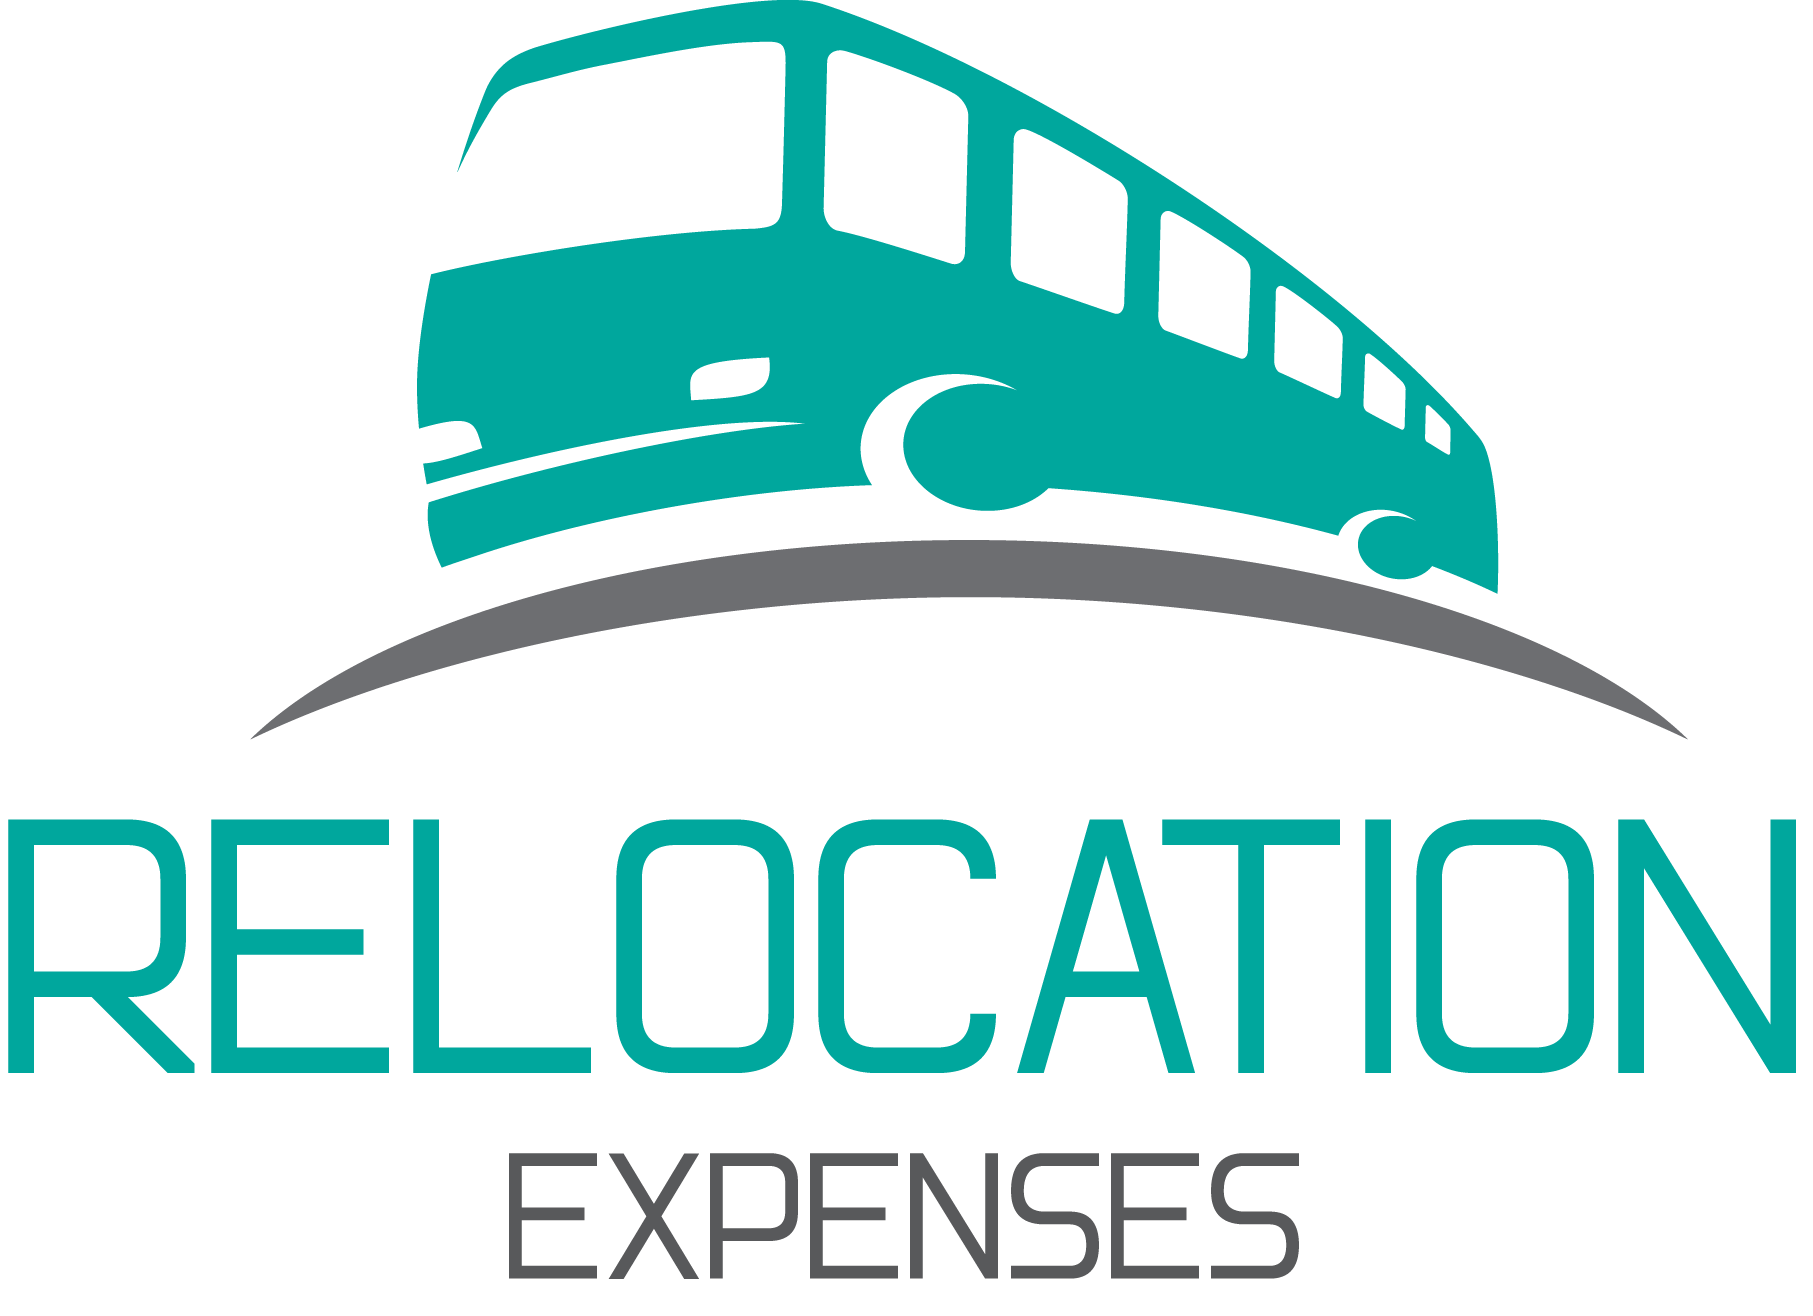 Relocation Expenses